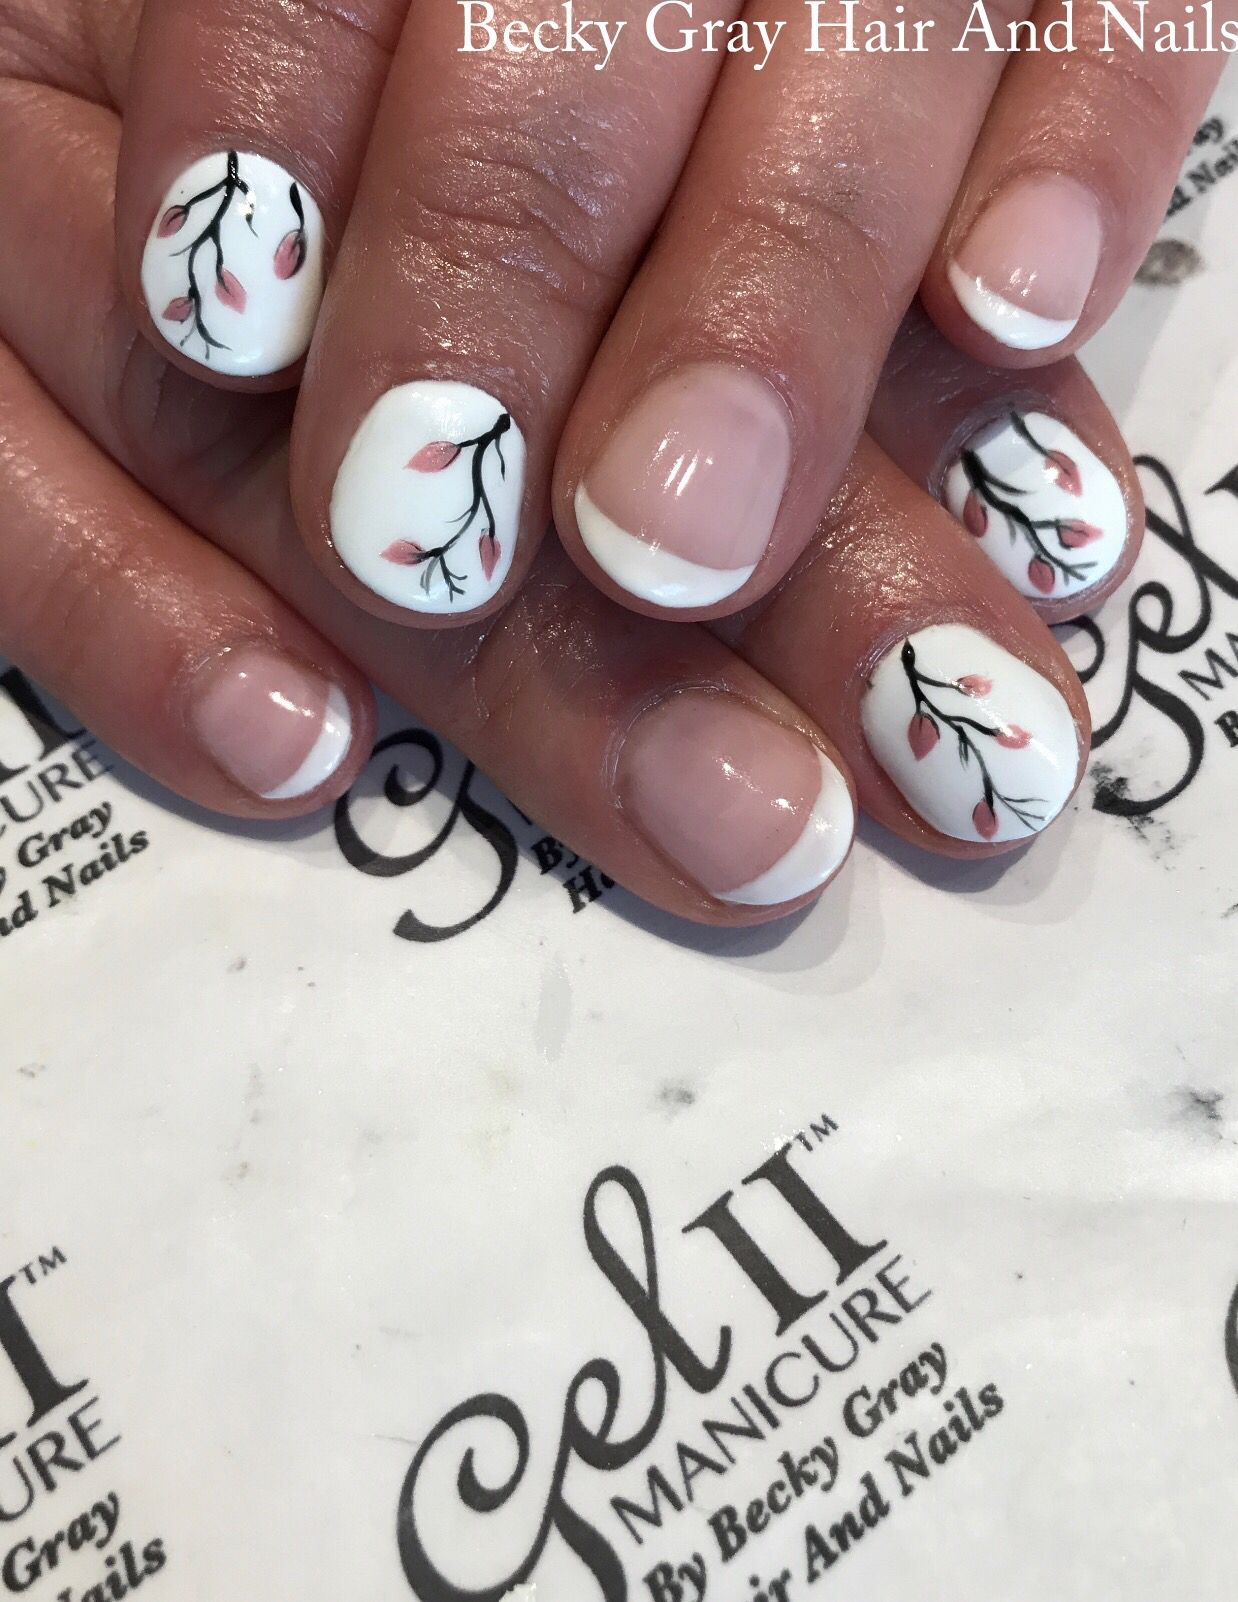 #gelii #manicure #frenchmanicure #handpainted #nailart #gel_two #showscratch #scratchmagazine